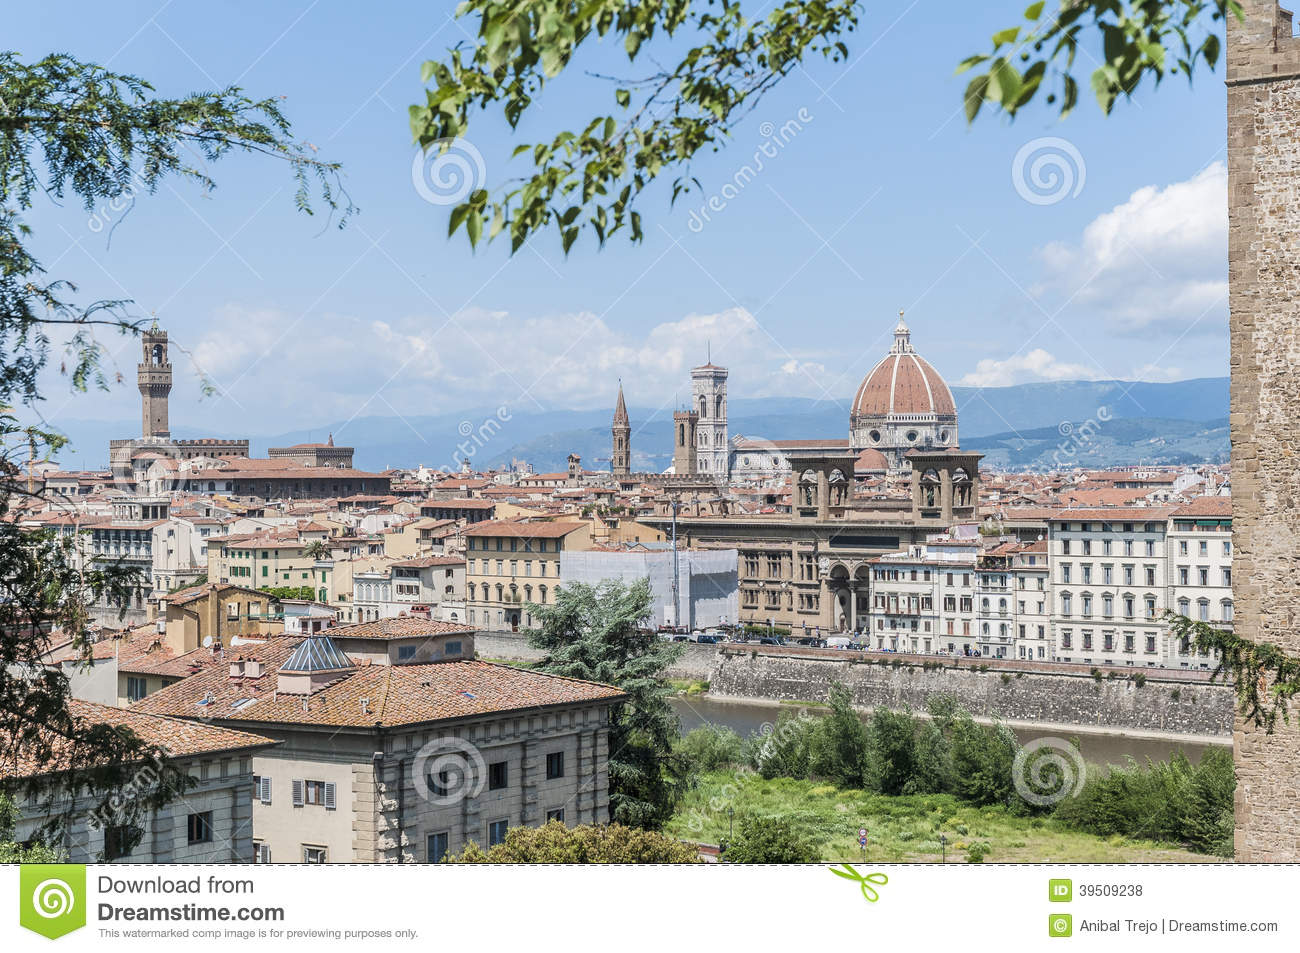 Florence s as seen from Piazzale Michelangelo, Italy